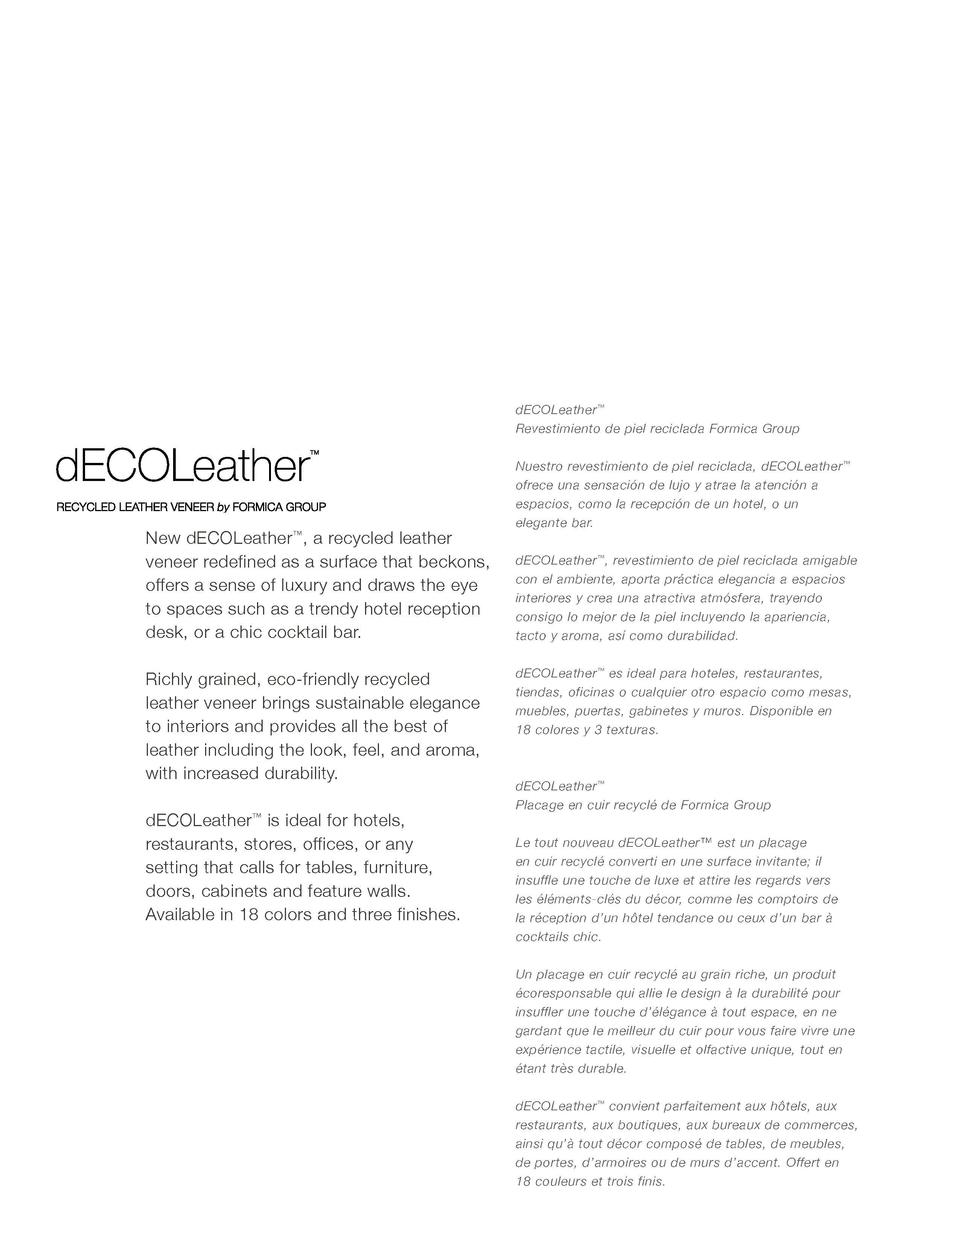 dECOLeather     Revestimiento de piel reciclada Formica Group  New dECOLeather   , a recycled leather veneer redefined as ...